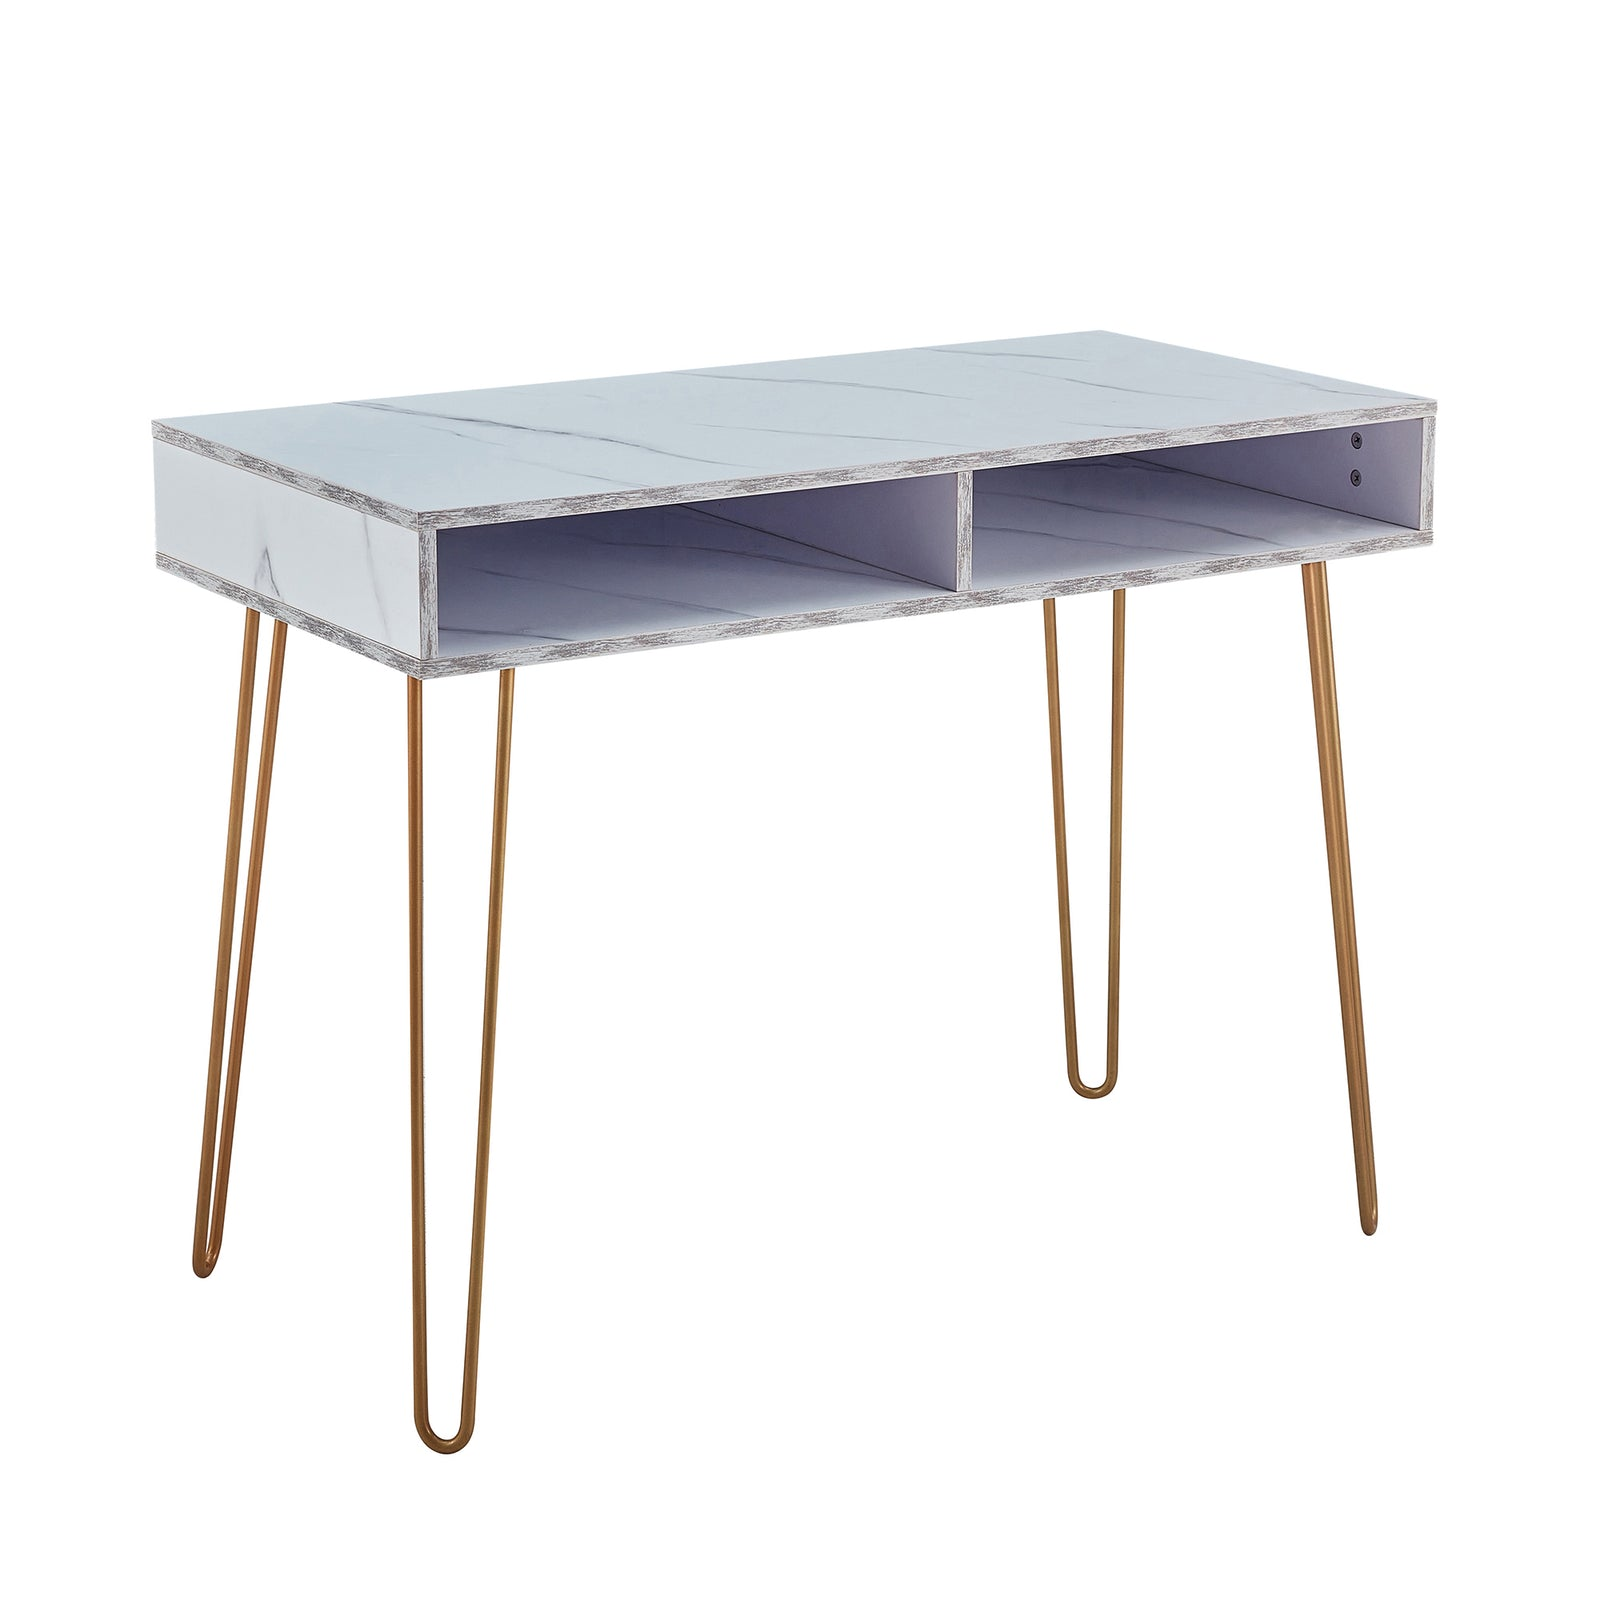 Beauty Table Side End Table Modern Marble MDF Top With Sturdy Gold Metal Legs White